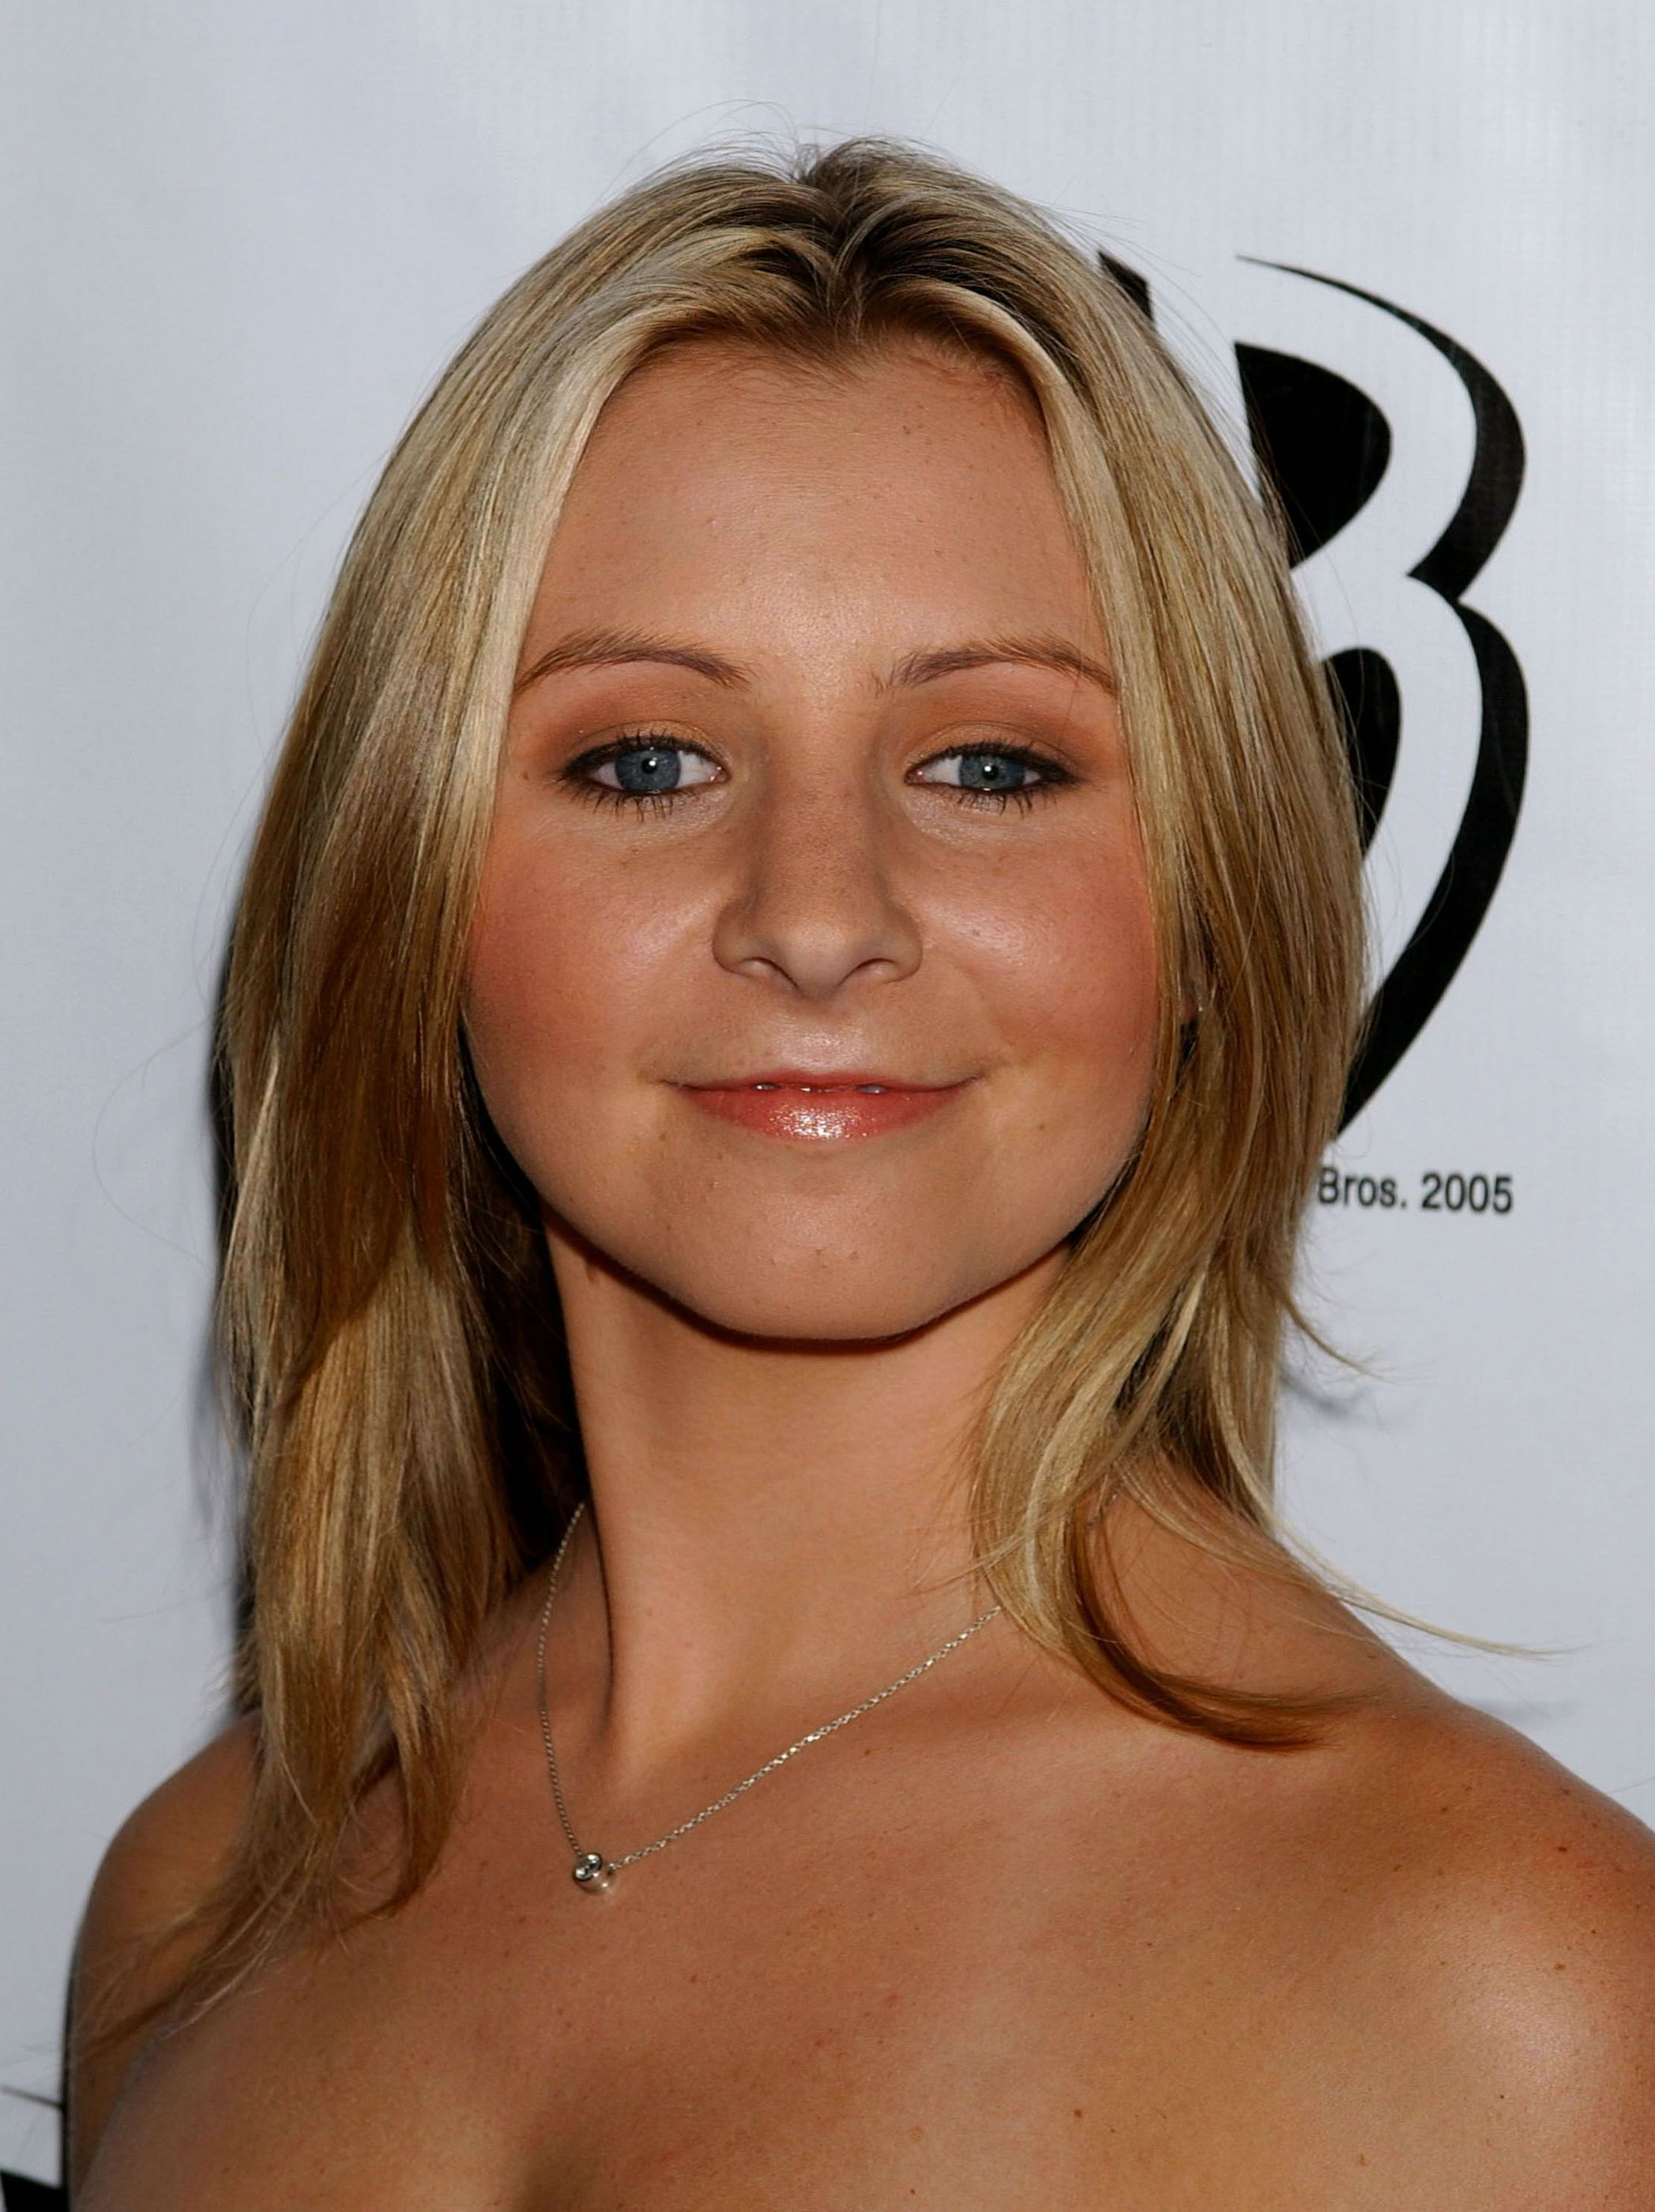 2095x2800 - Beverley Mitchell Wallpapers 24